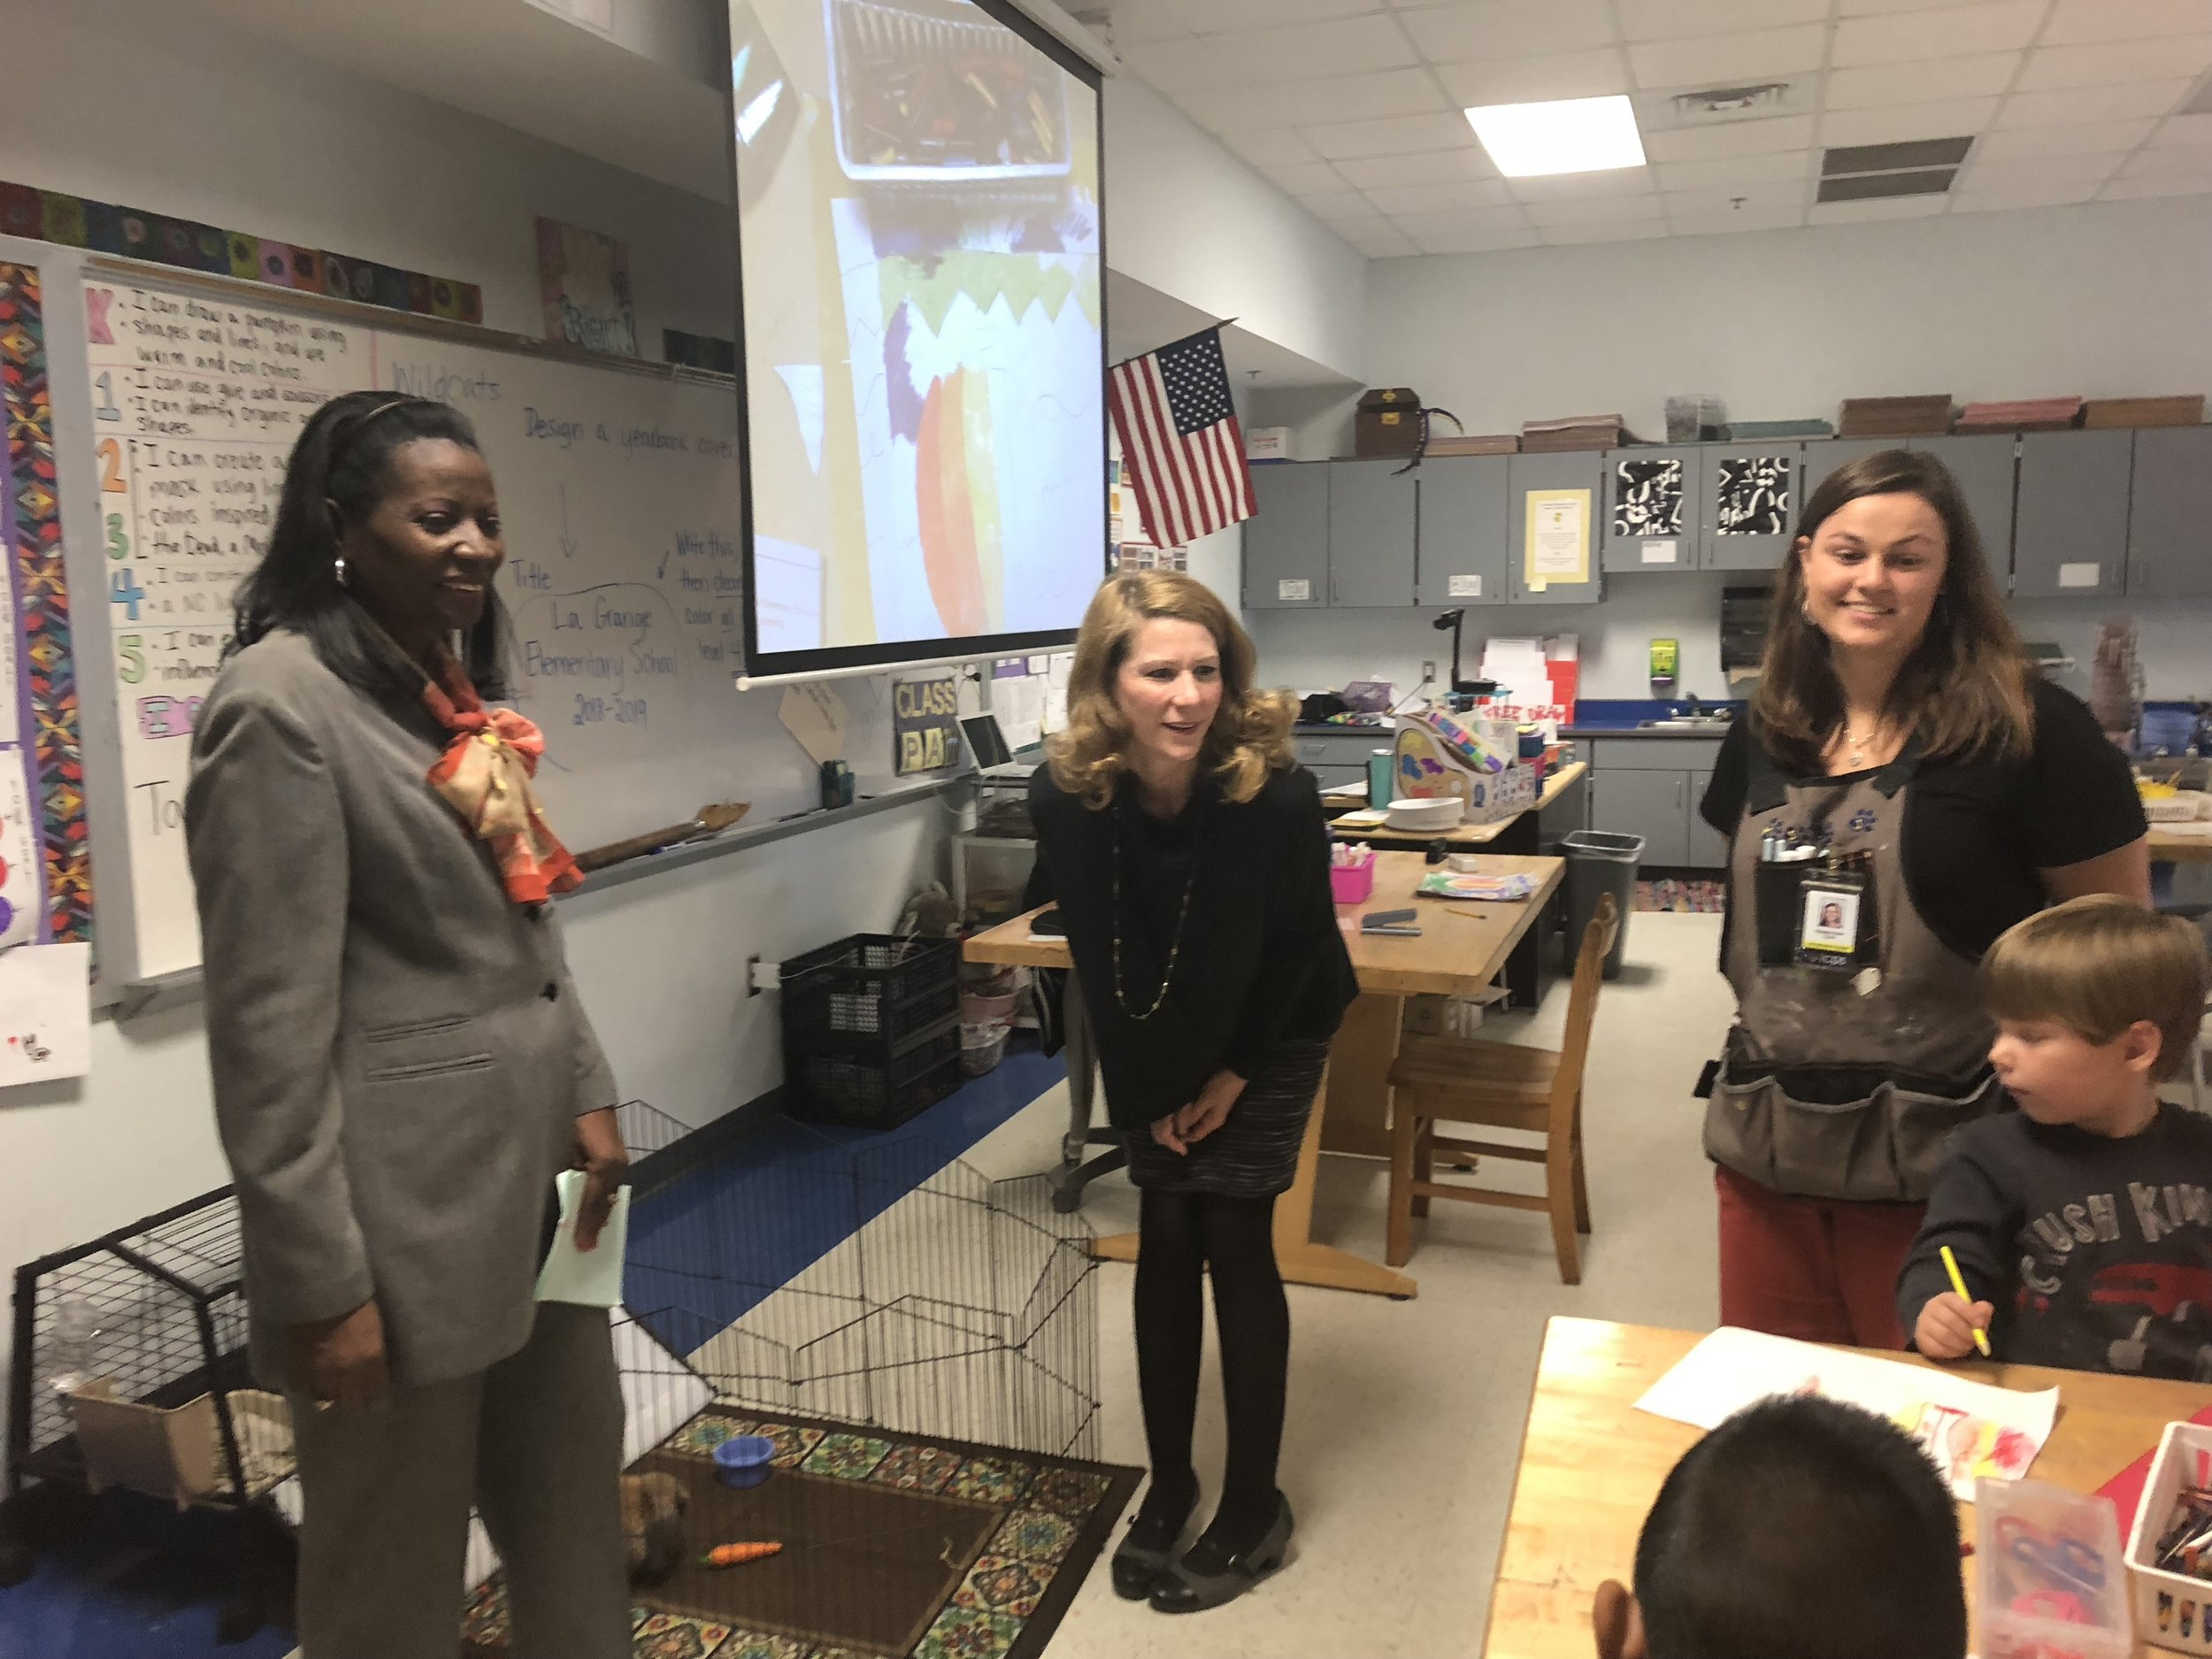 The first lady meets the classroom pet. Photo by Catherine Hardee/Neuse News